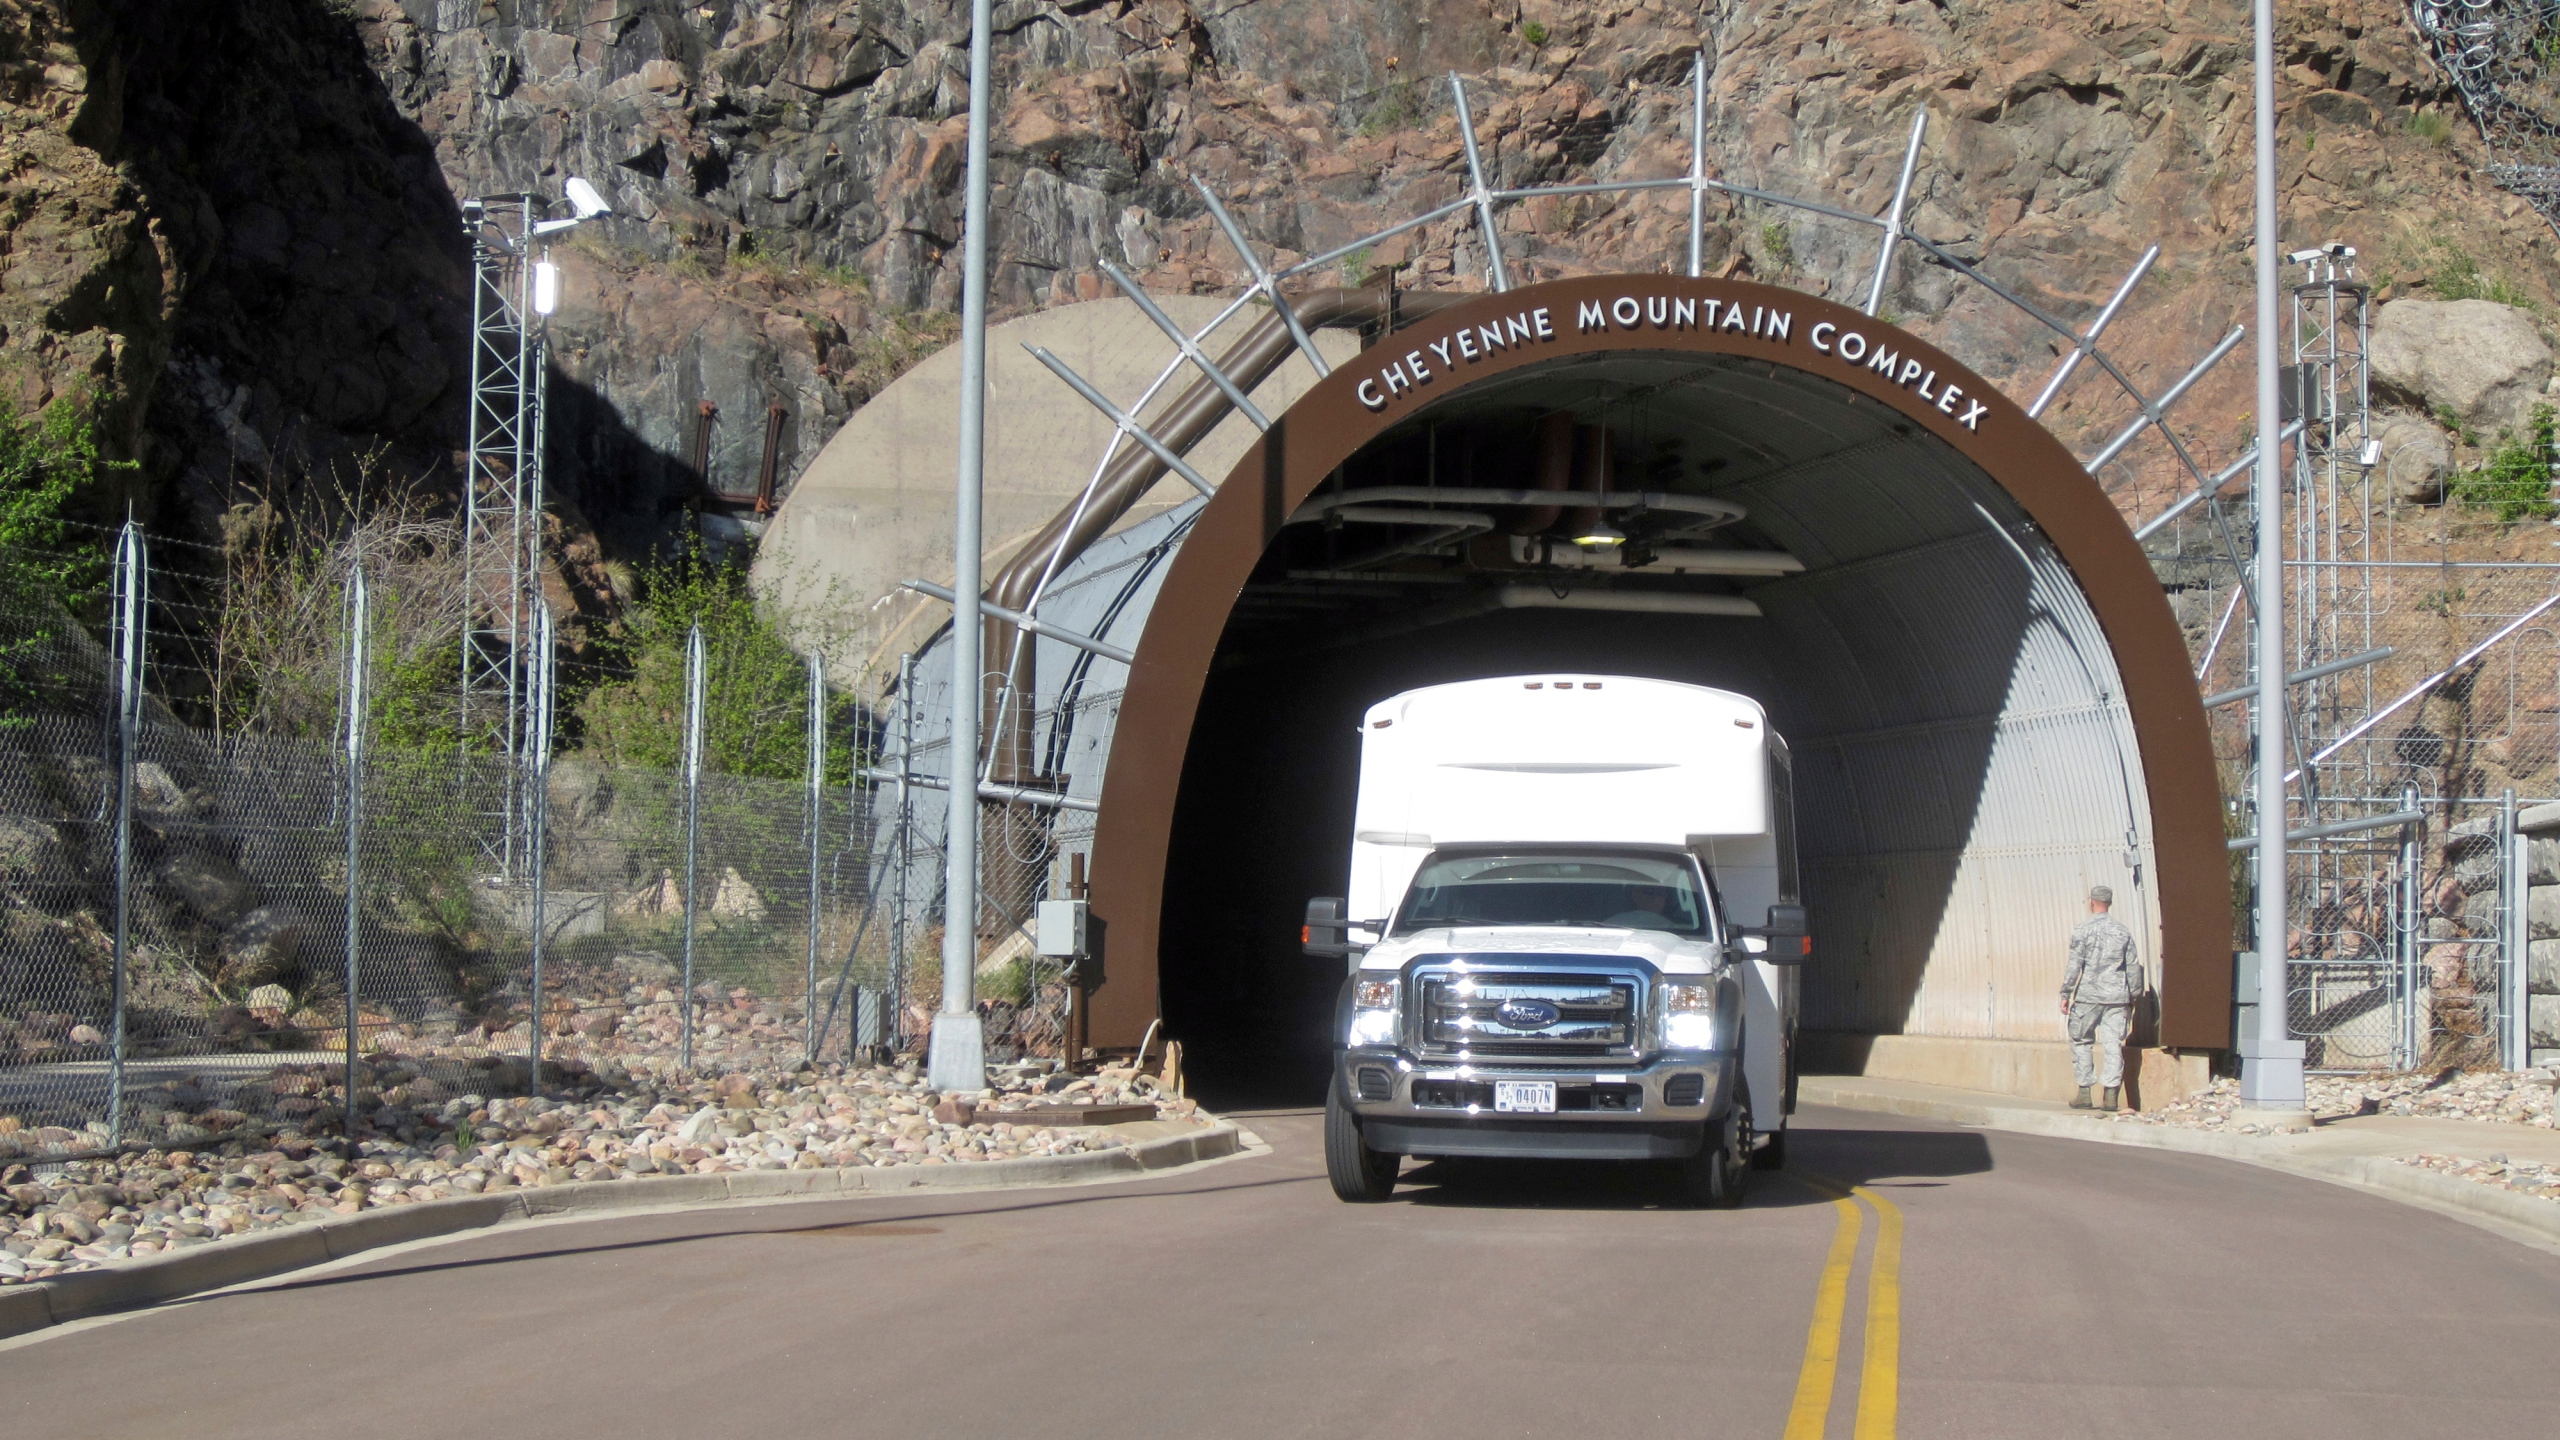 In this Thursday, May 10, 2018 photo, a crew bus leaves the the Cheyenne Mountain Air Force Station complex outside Colorado Springs, Colo. (AP Photo/Dan Elliott)